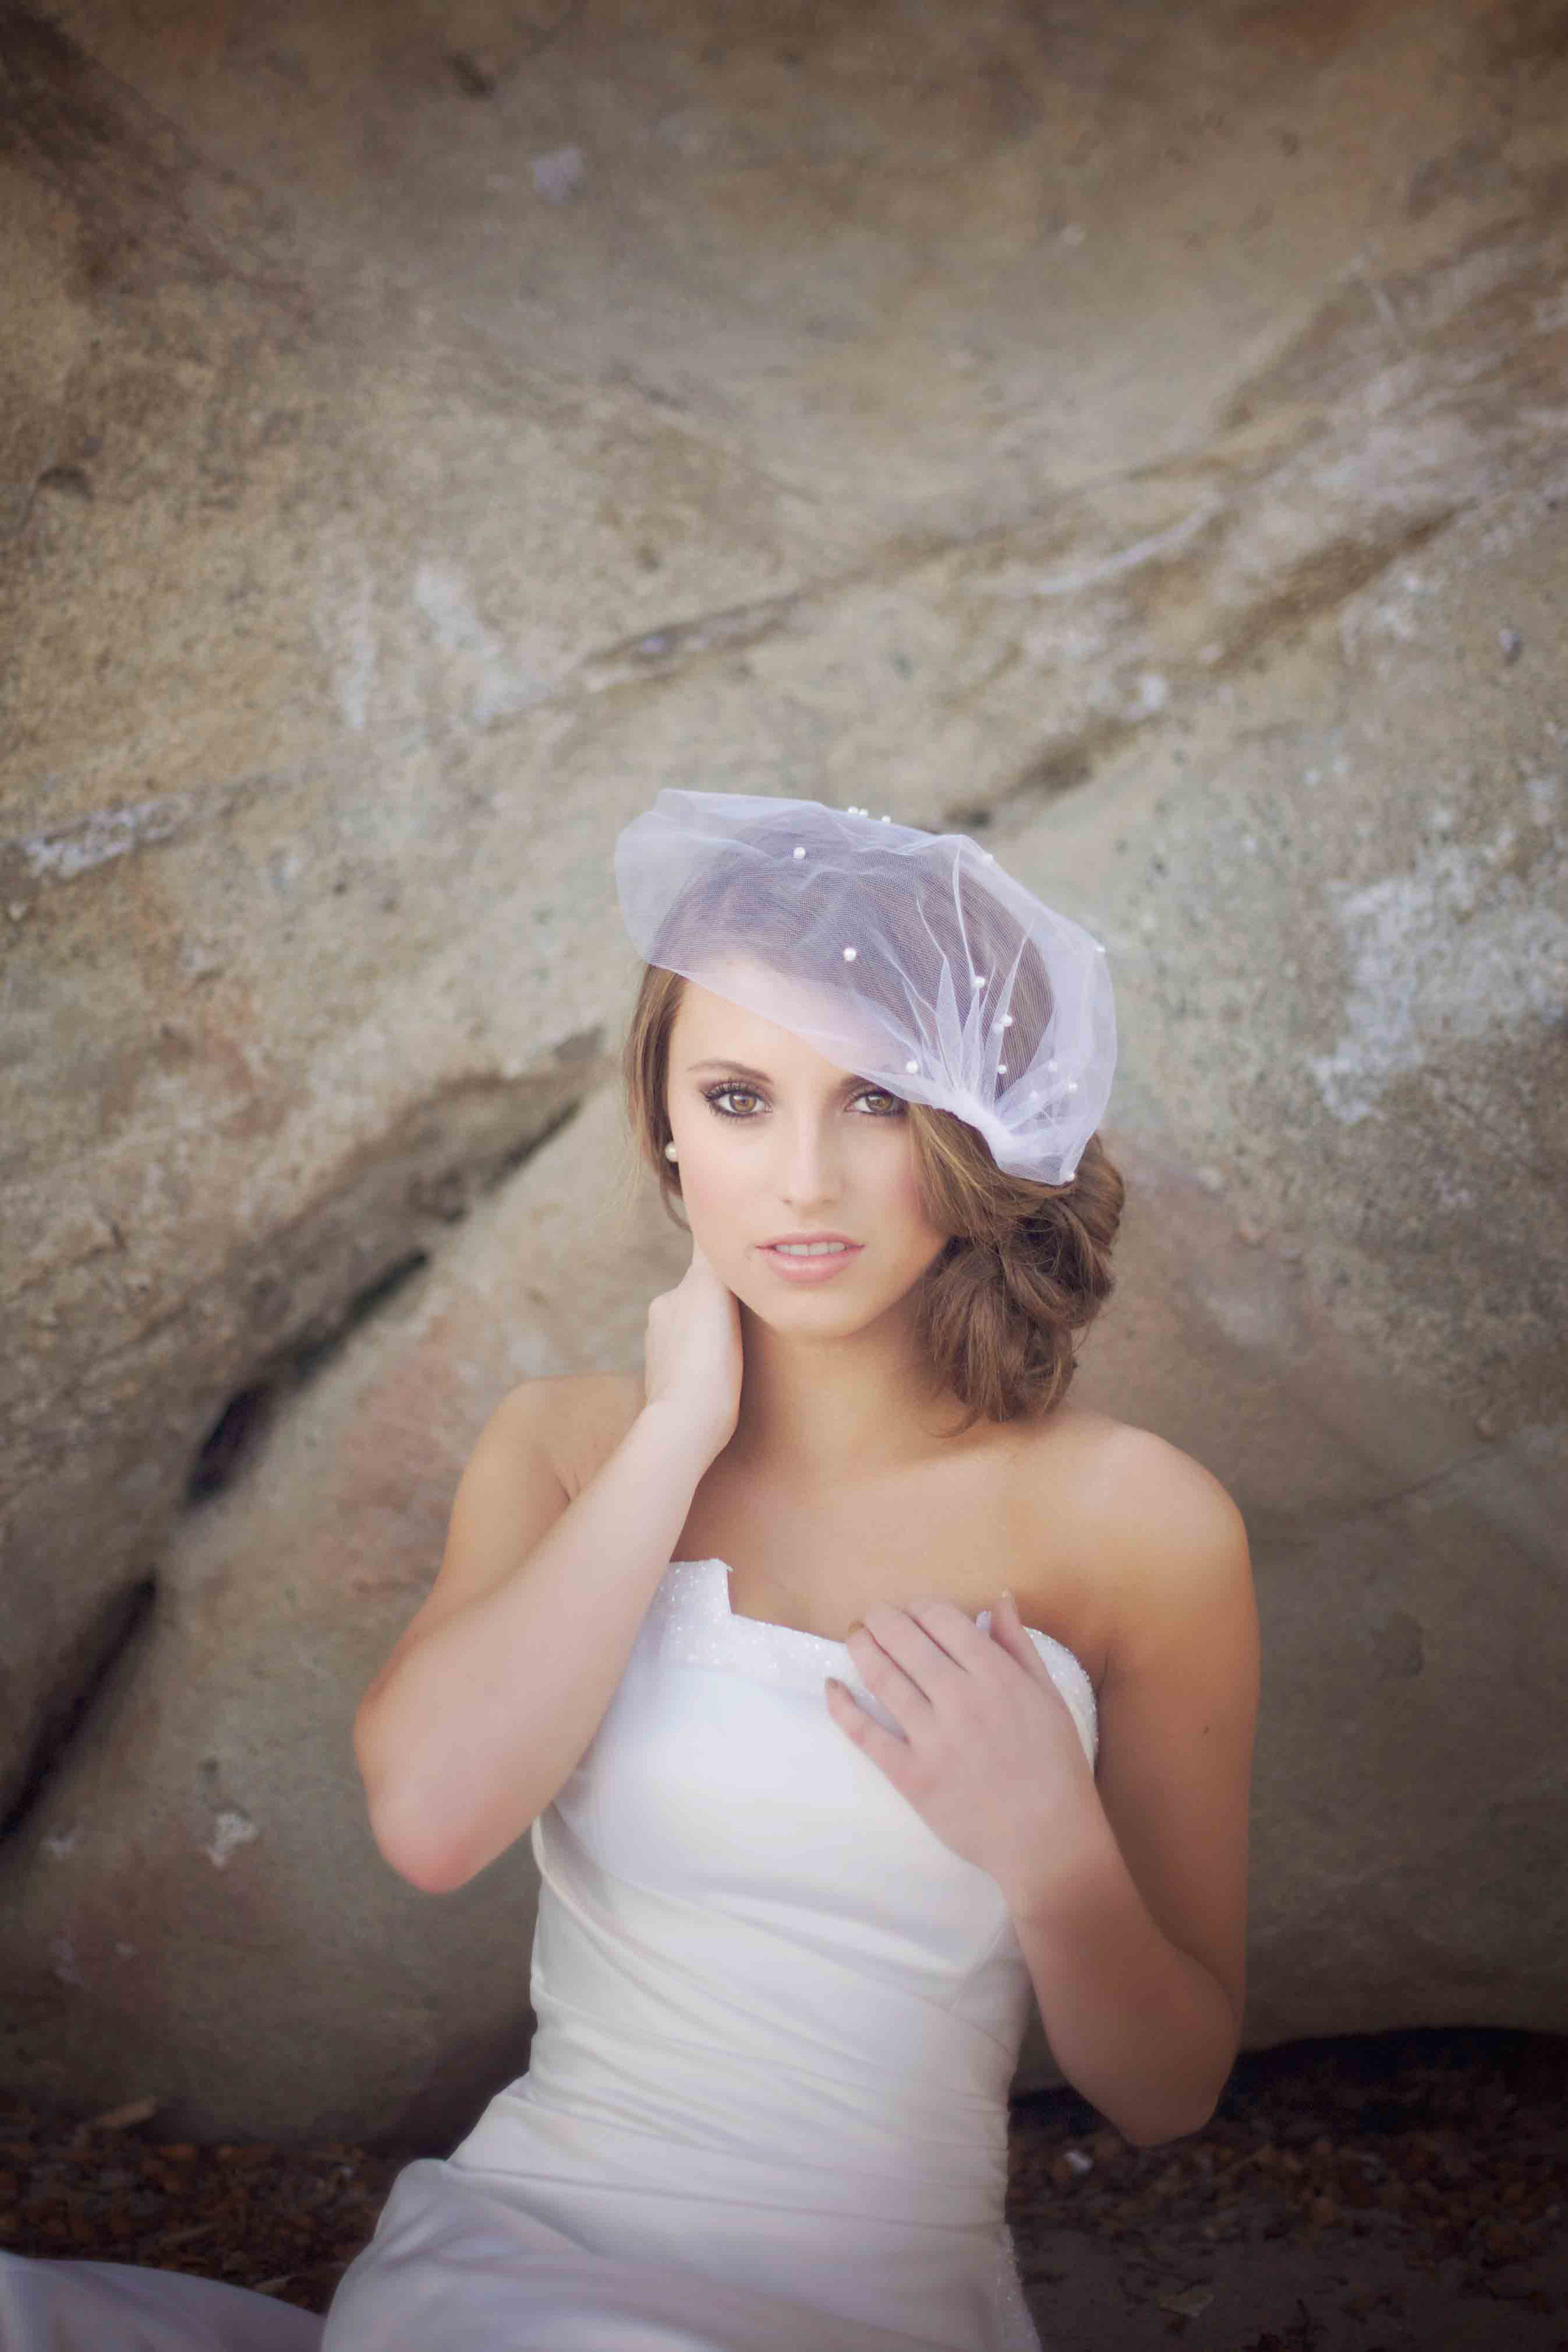 San Clemente Beach rocks are the backdrop for this lovely bride. Shot in Orange County California.